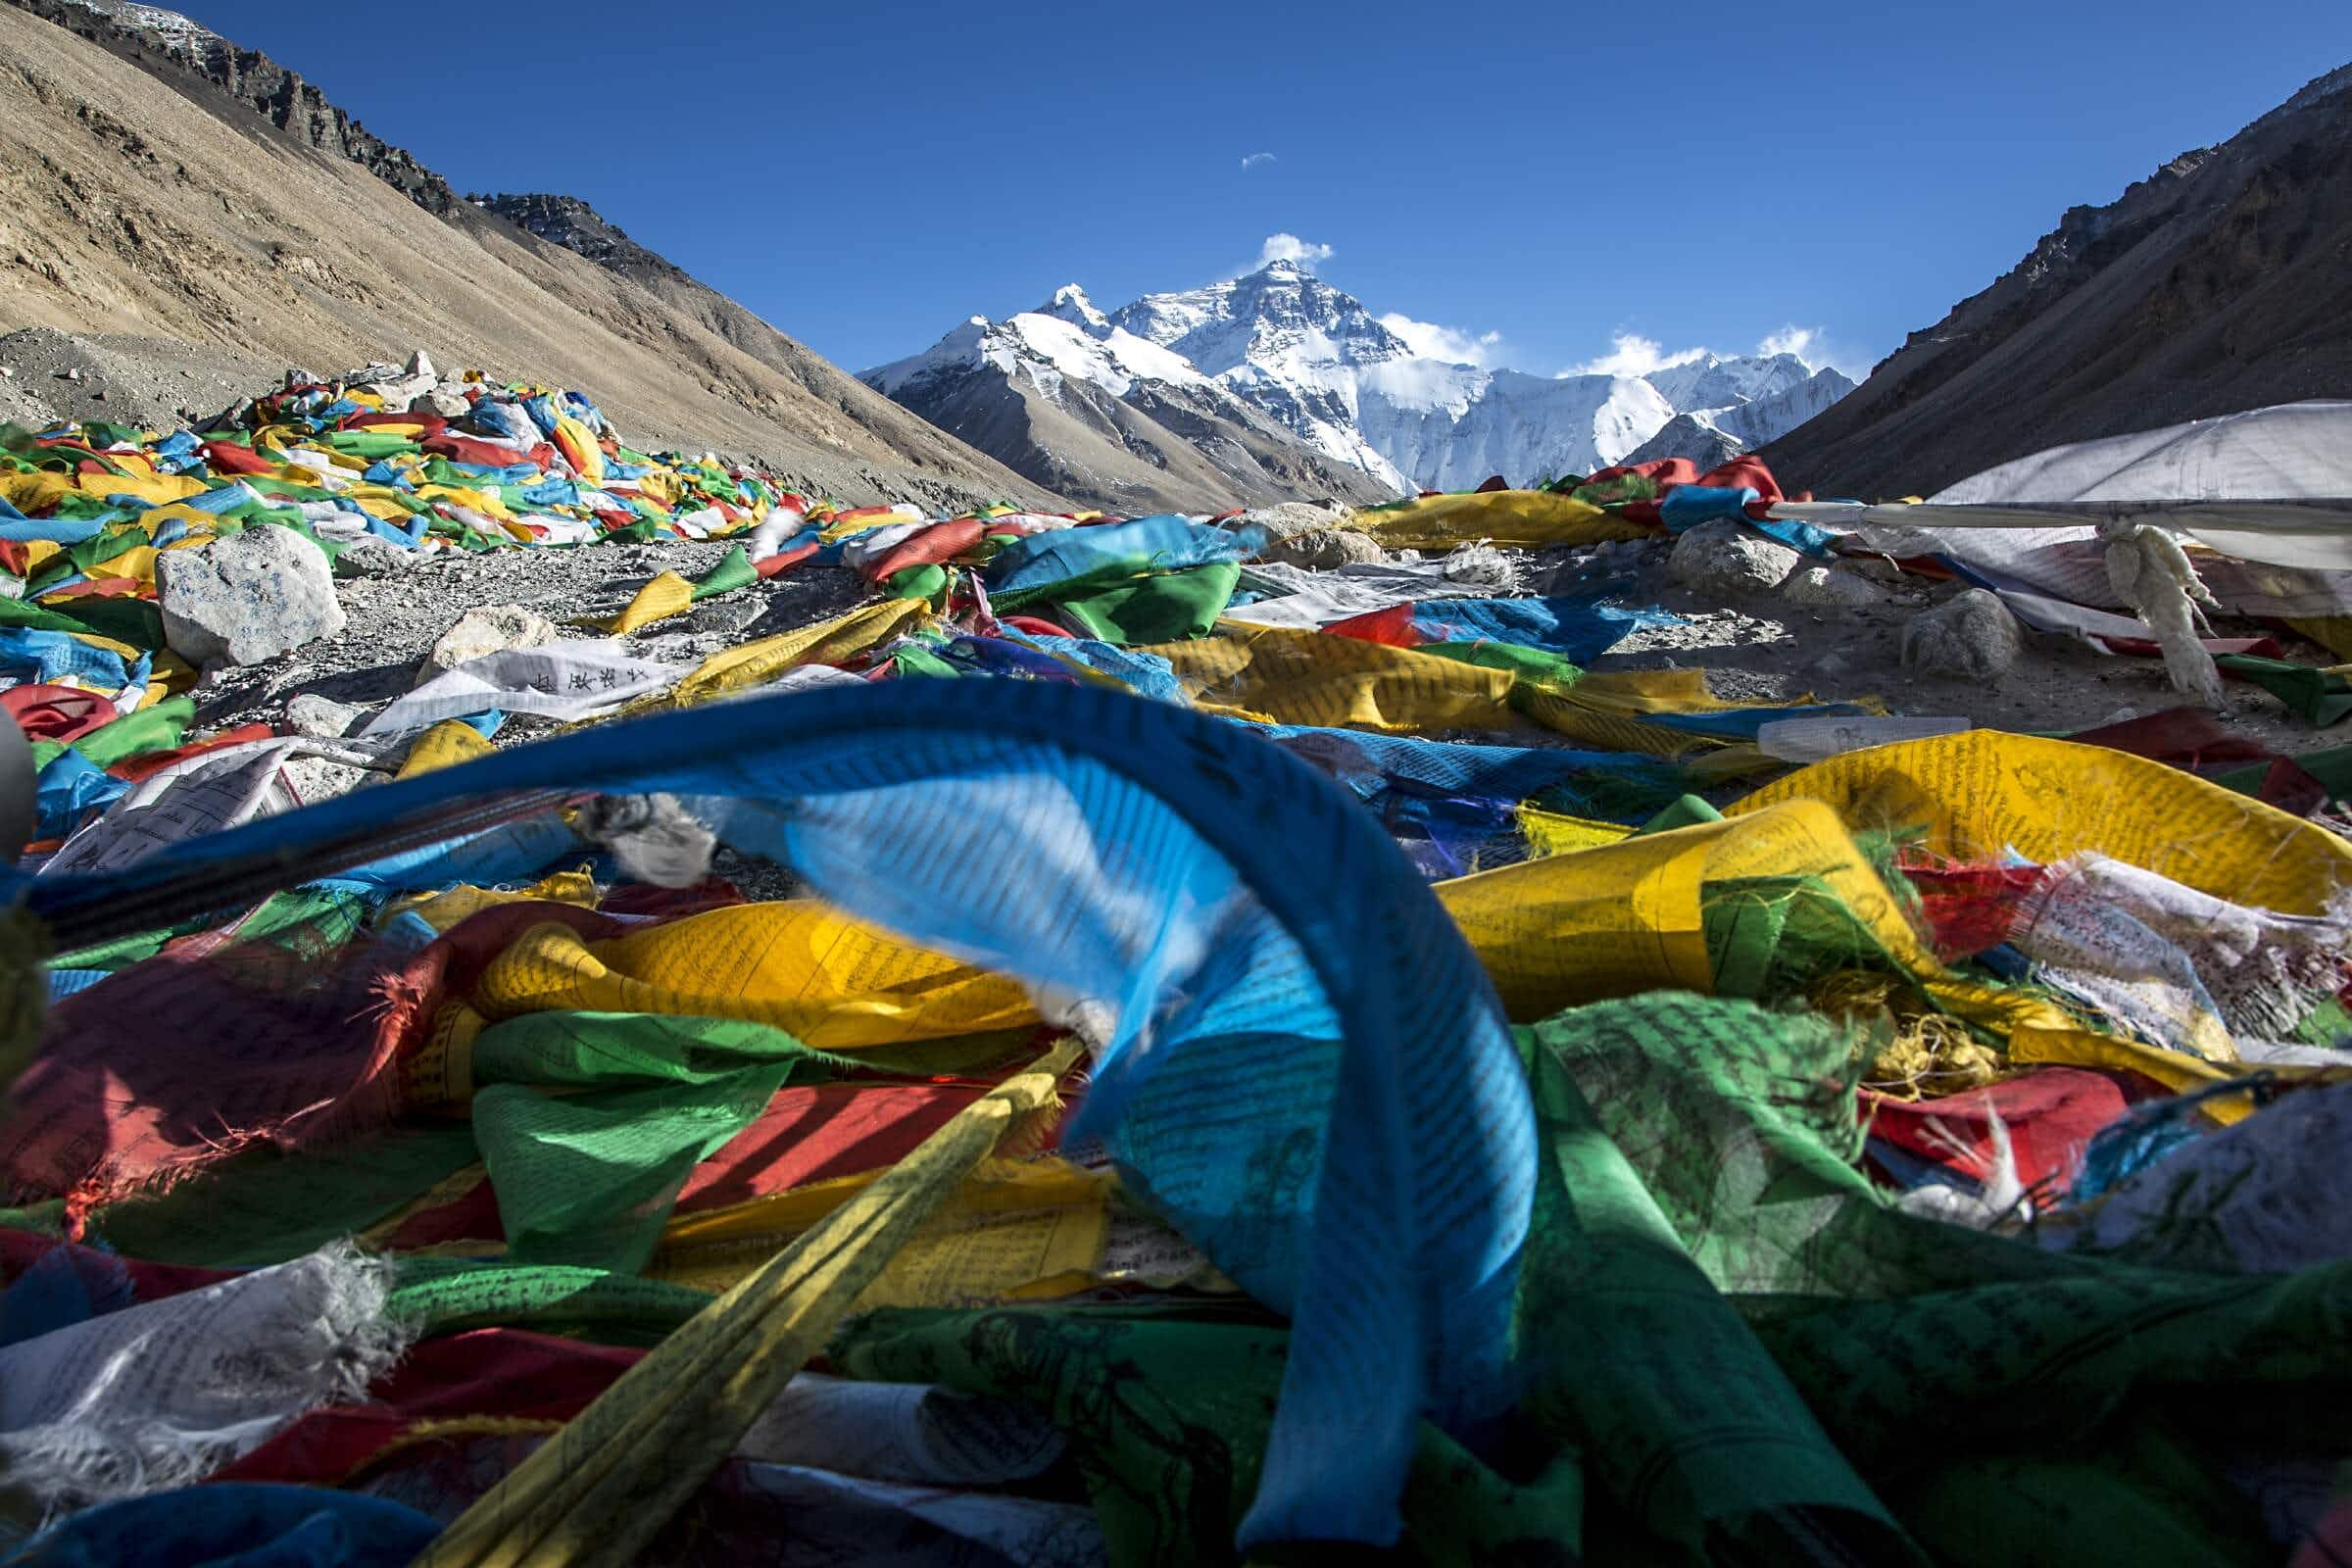 Tibet's Everest Base Camp is closed to tourists